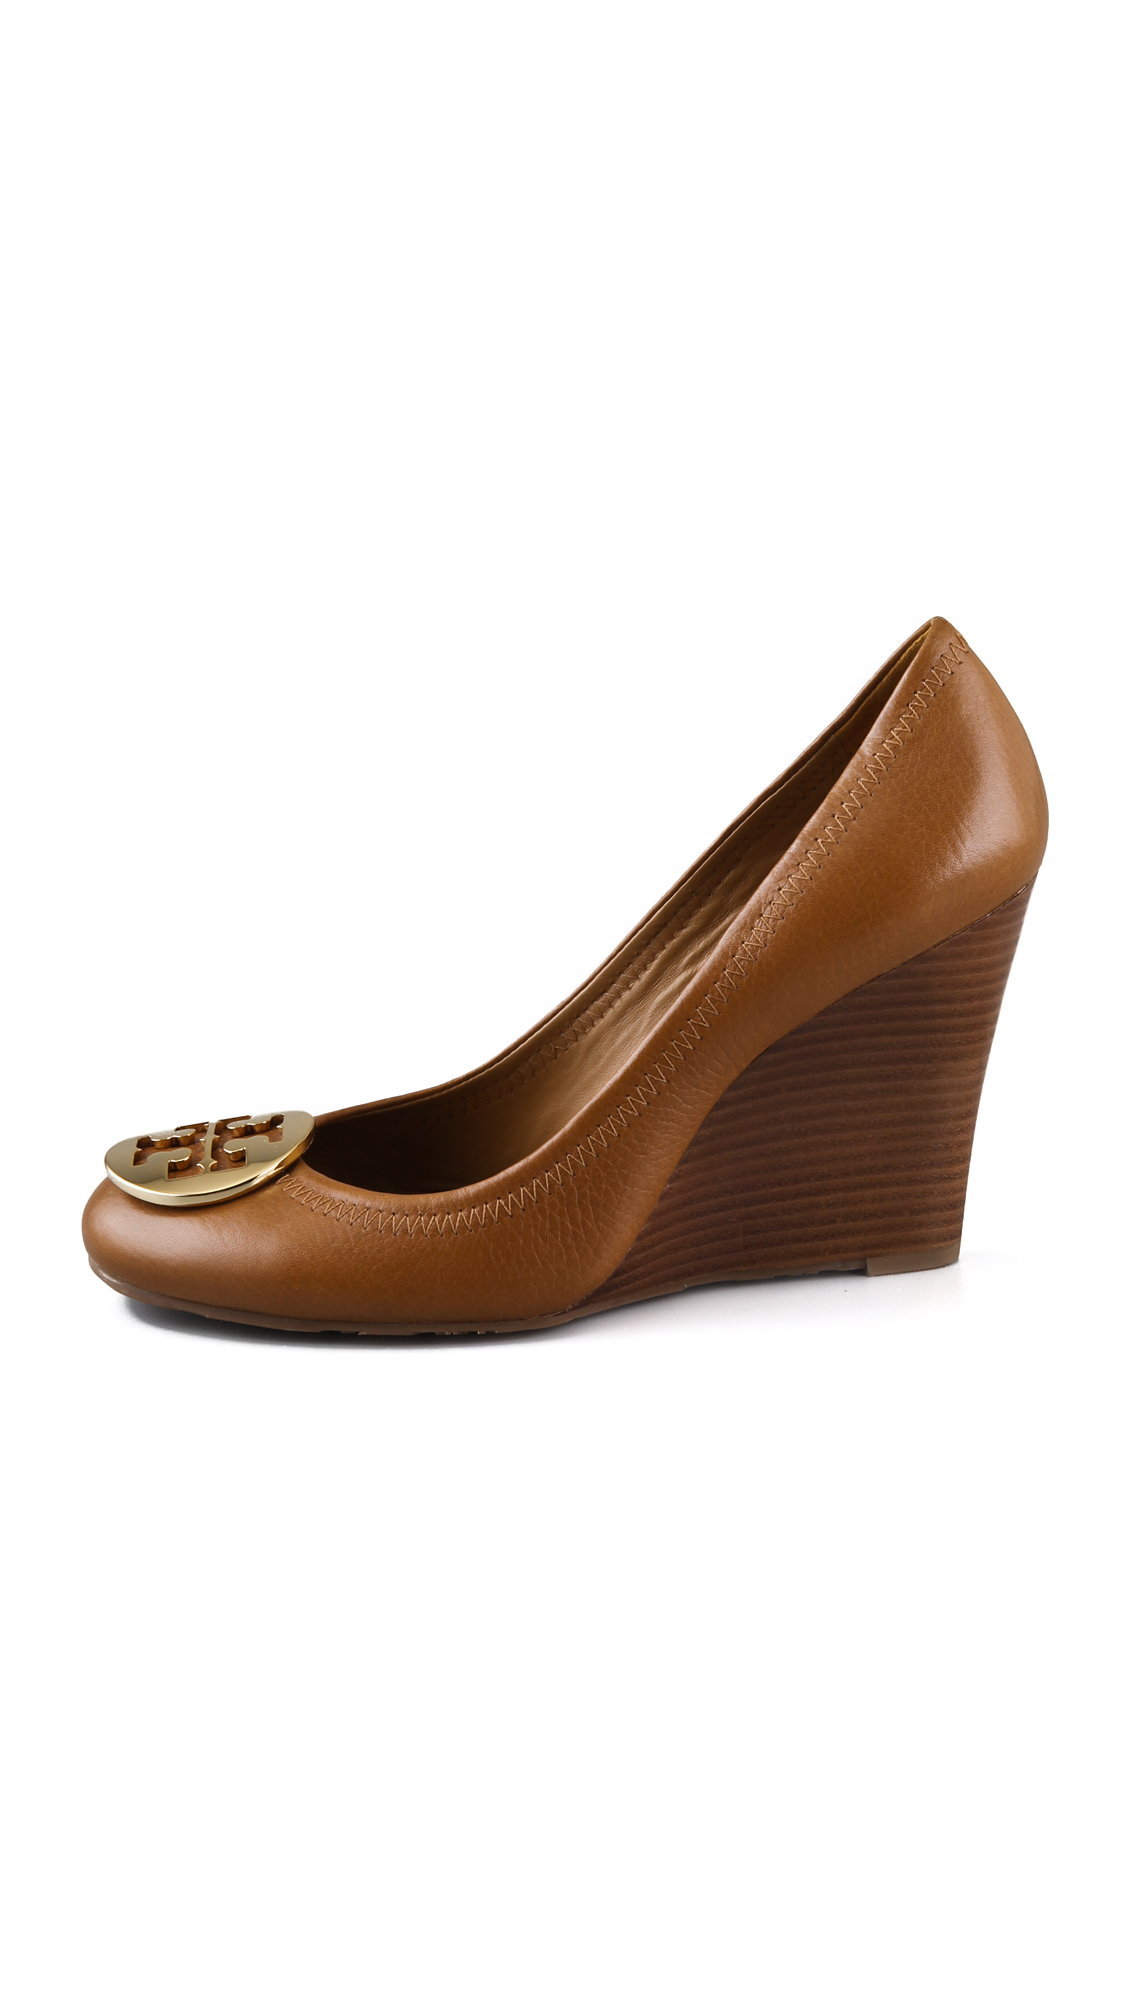 tory burch sophie wedge review